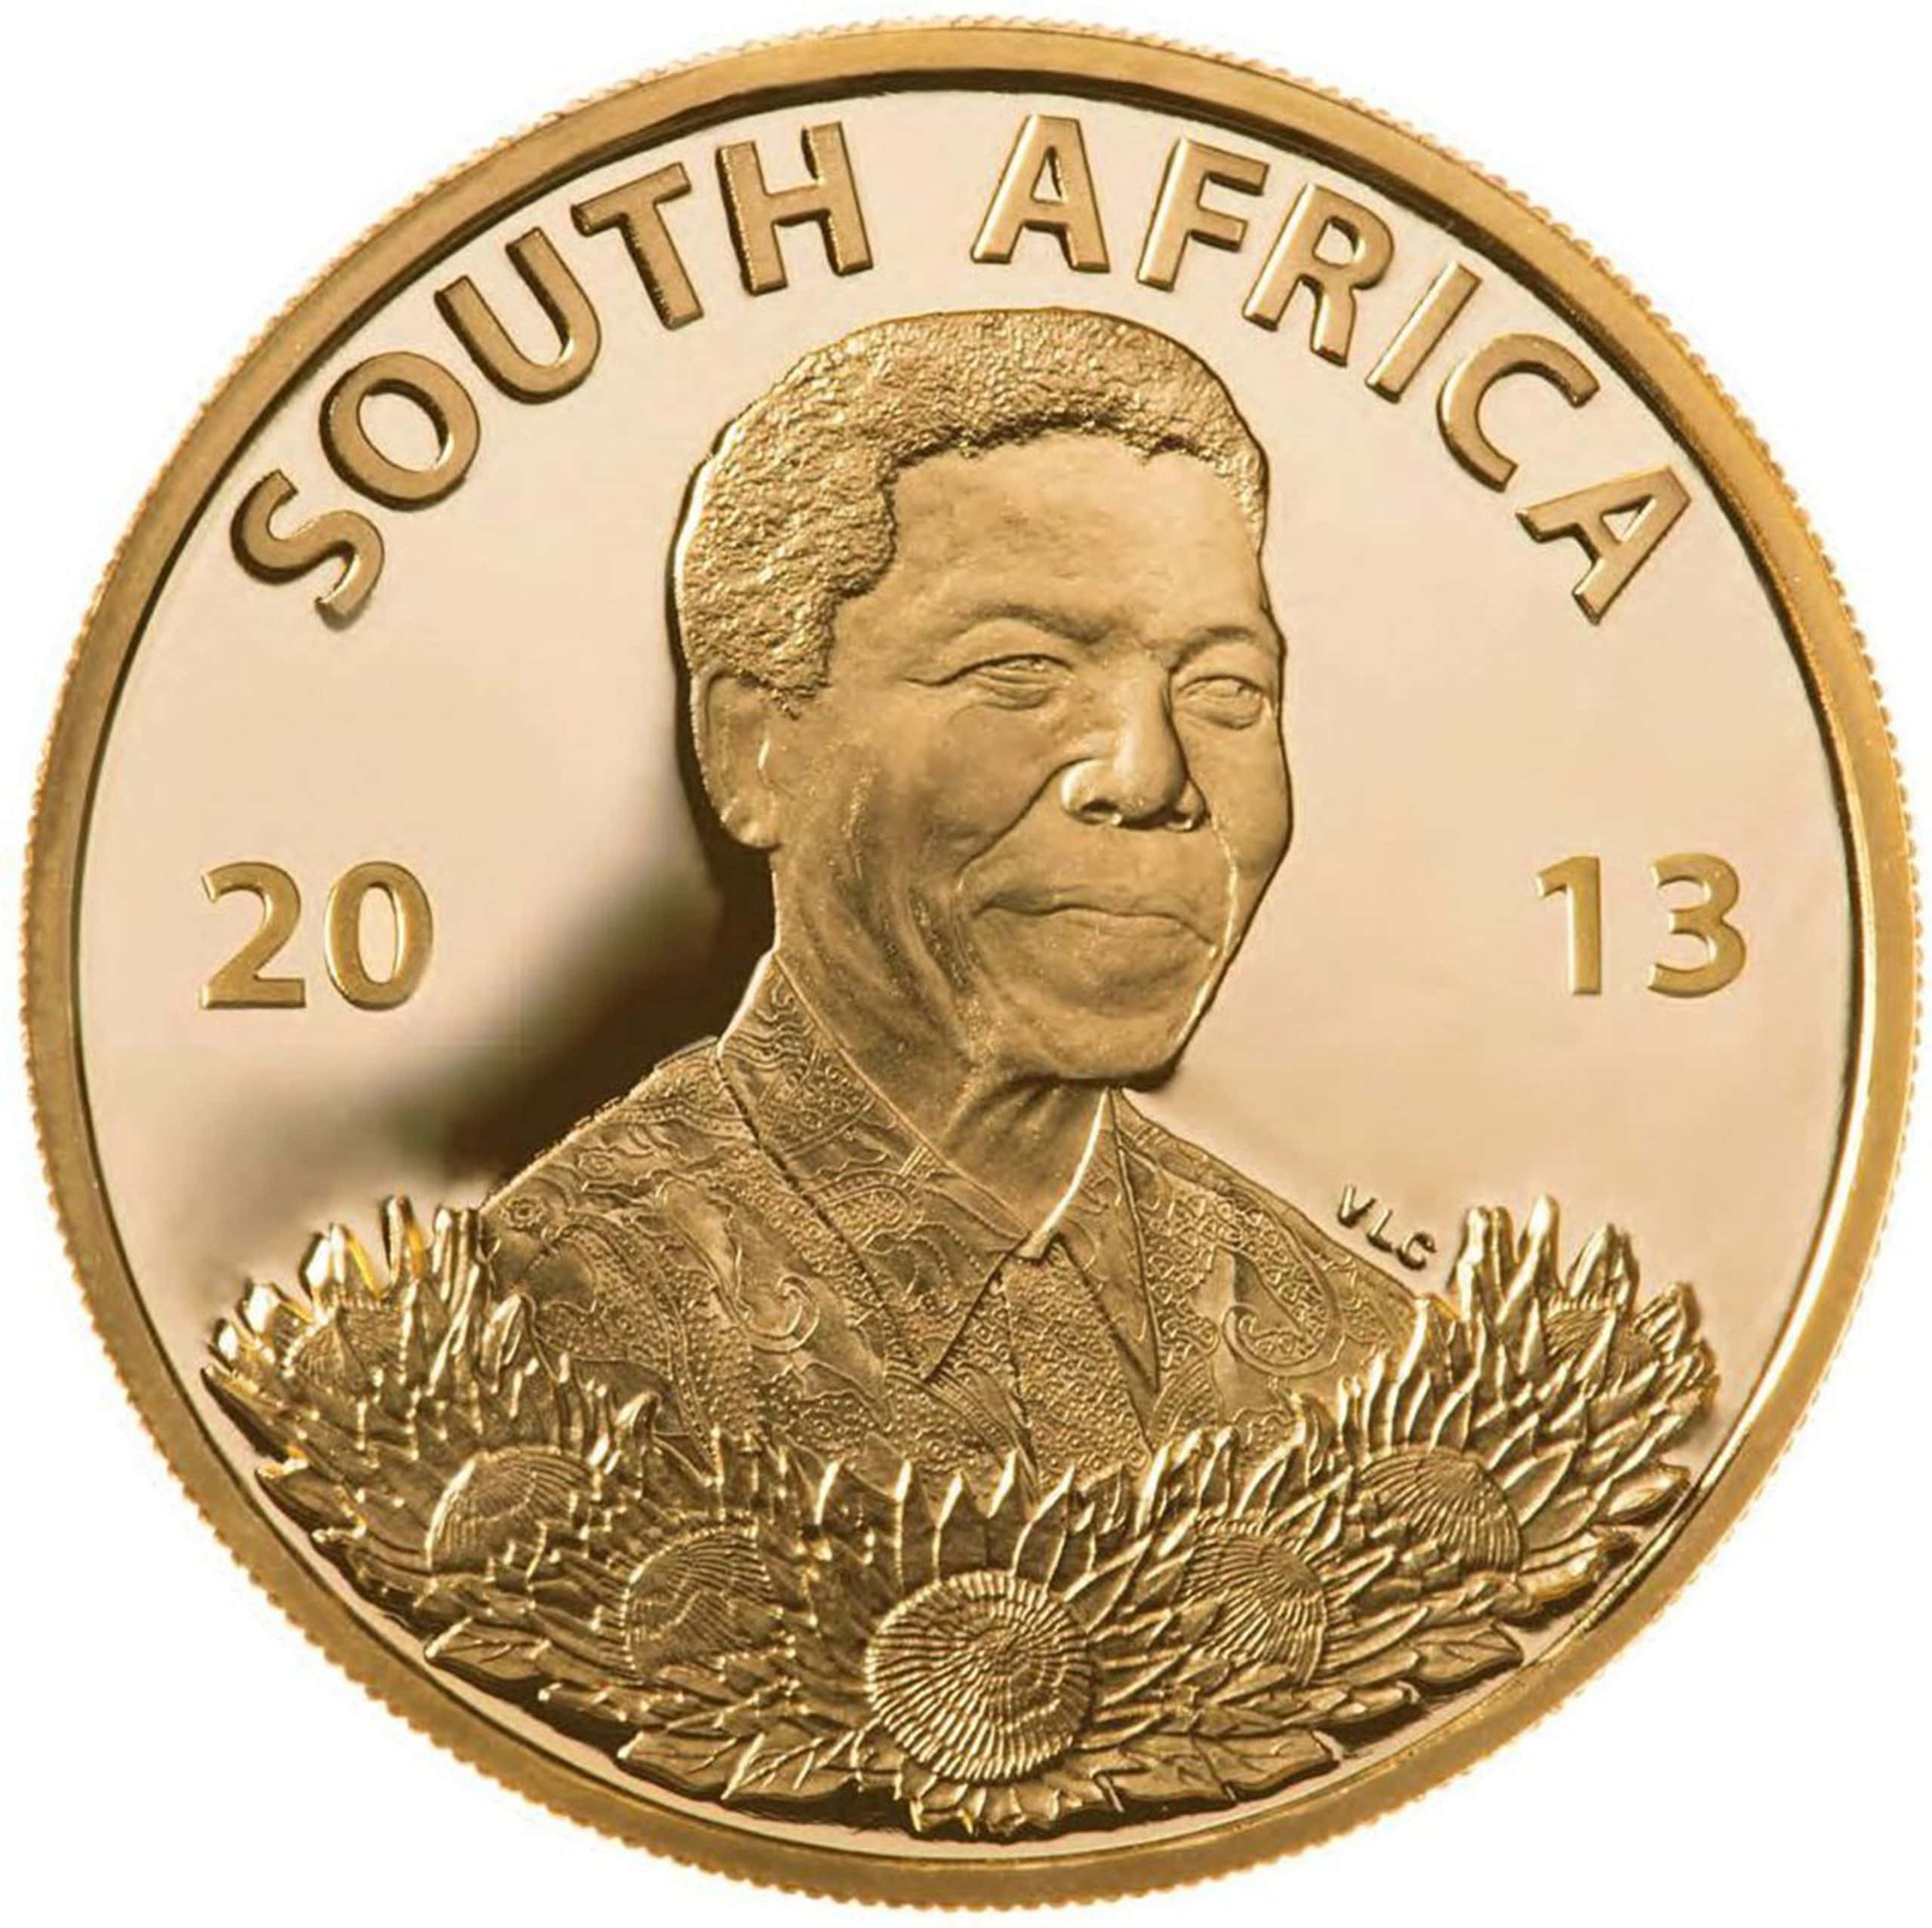 2013 South African Gold R5 'roof 'Life of a Legend Series' -Nelson Mandela 3.11 gms